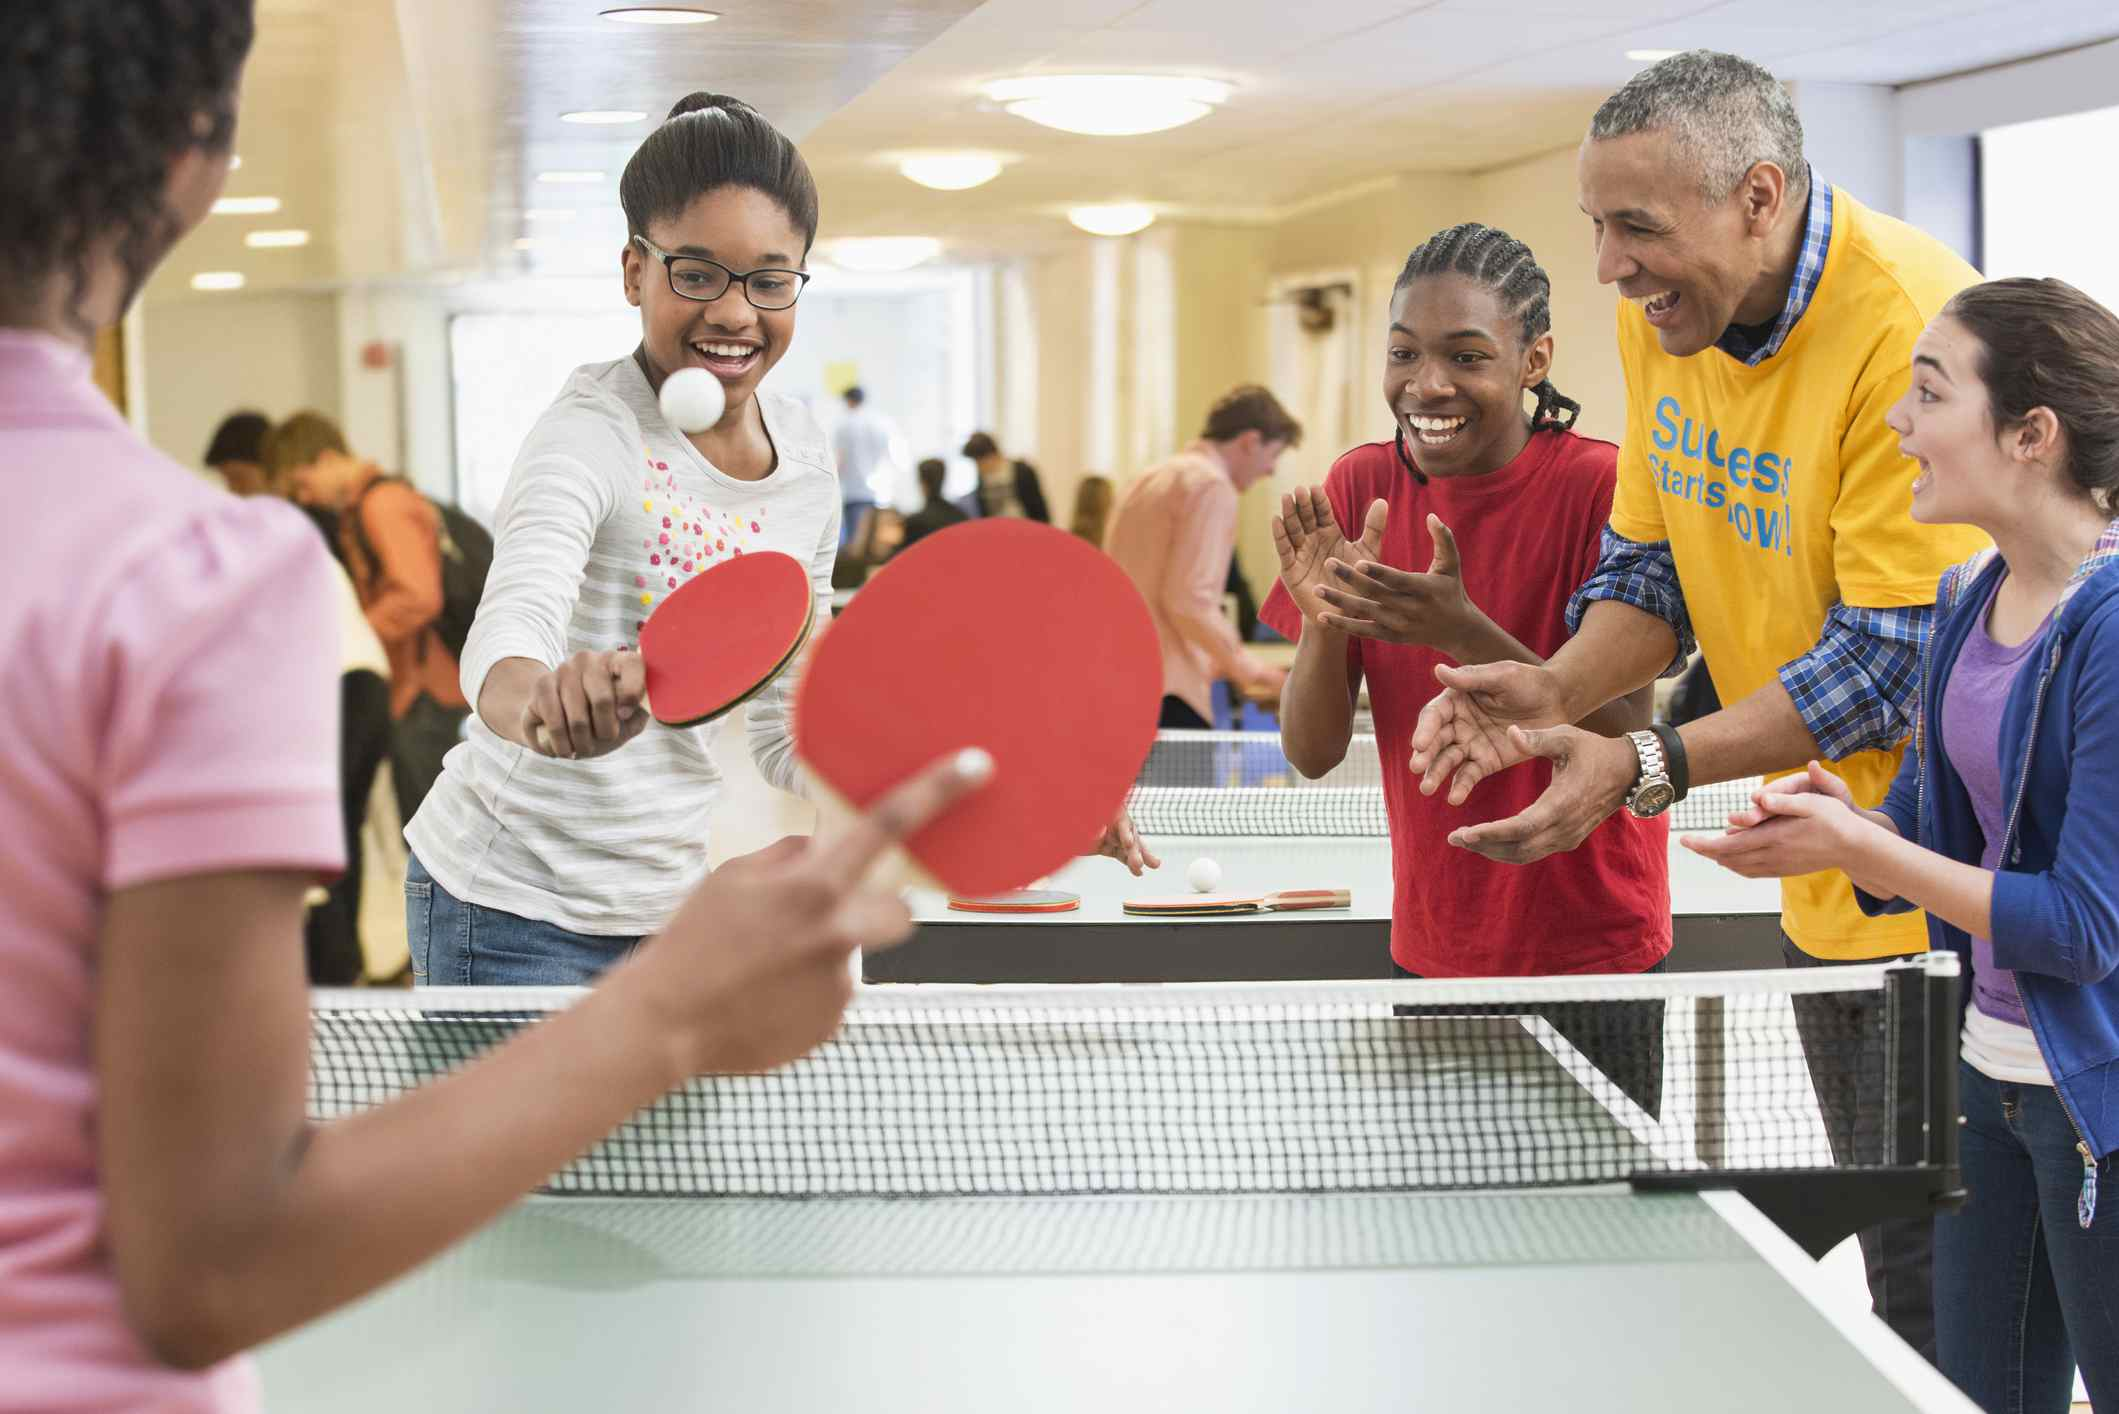 Group of kids and adult playing ping pong